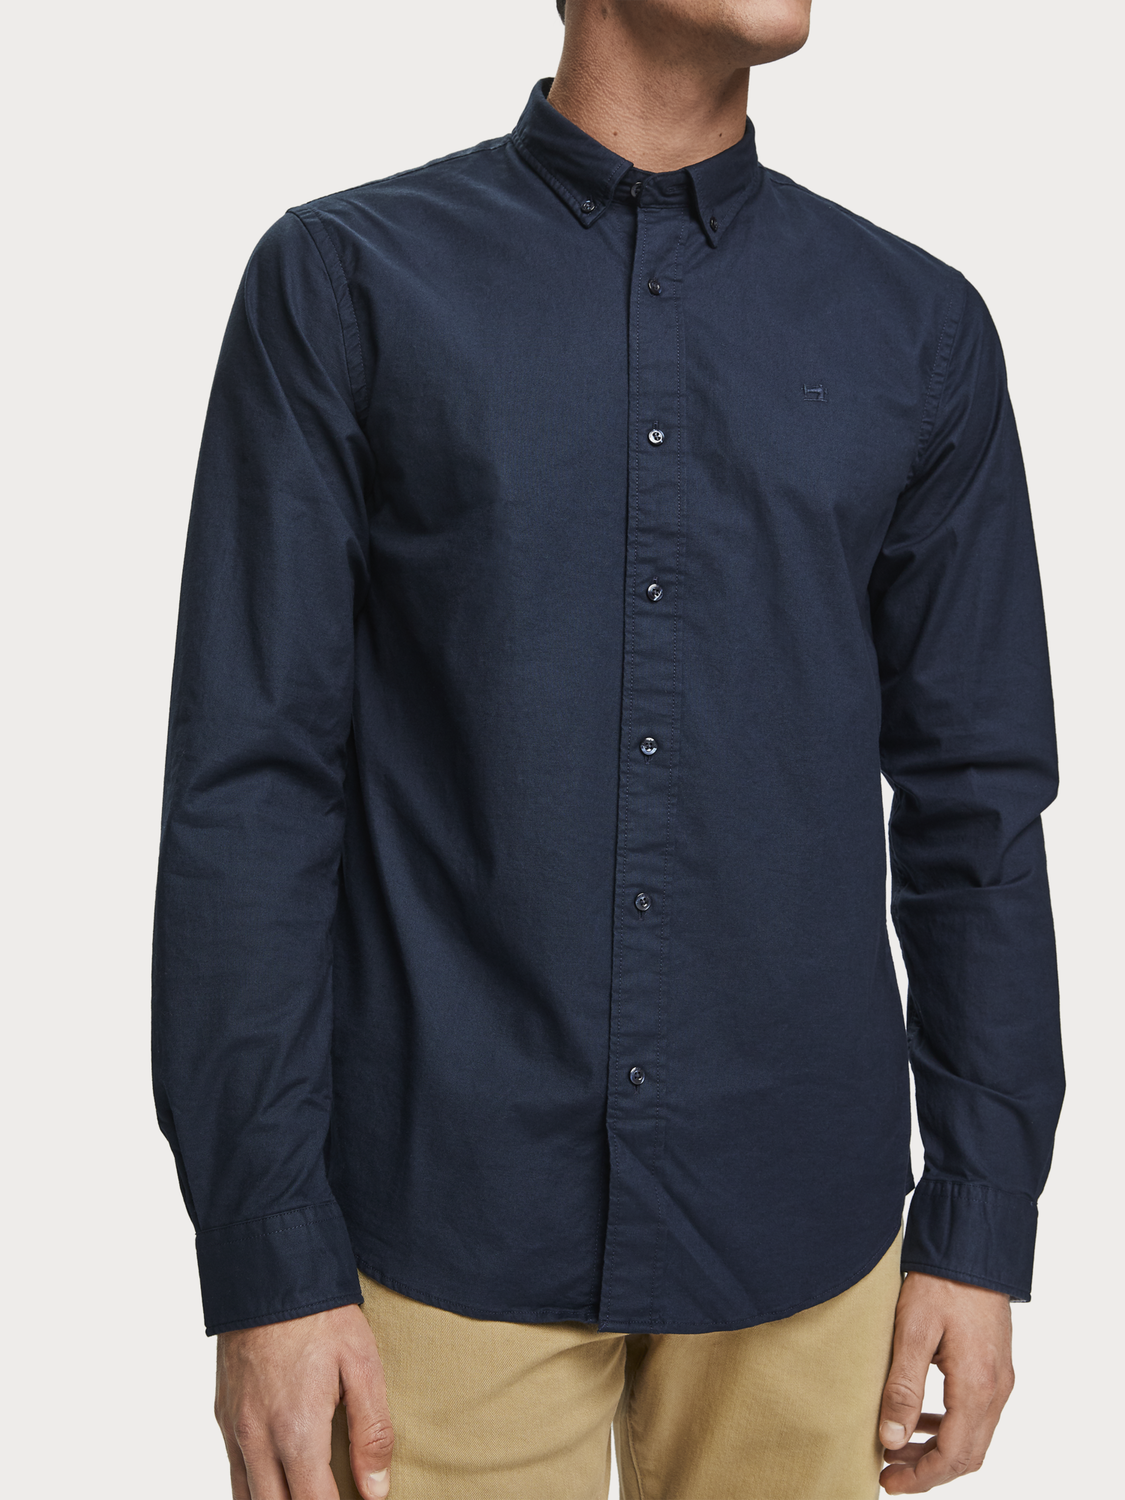 Herren Klassisches Oxford-Shirt aus Webstoff | Regular Fit